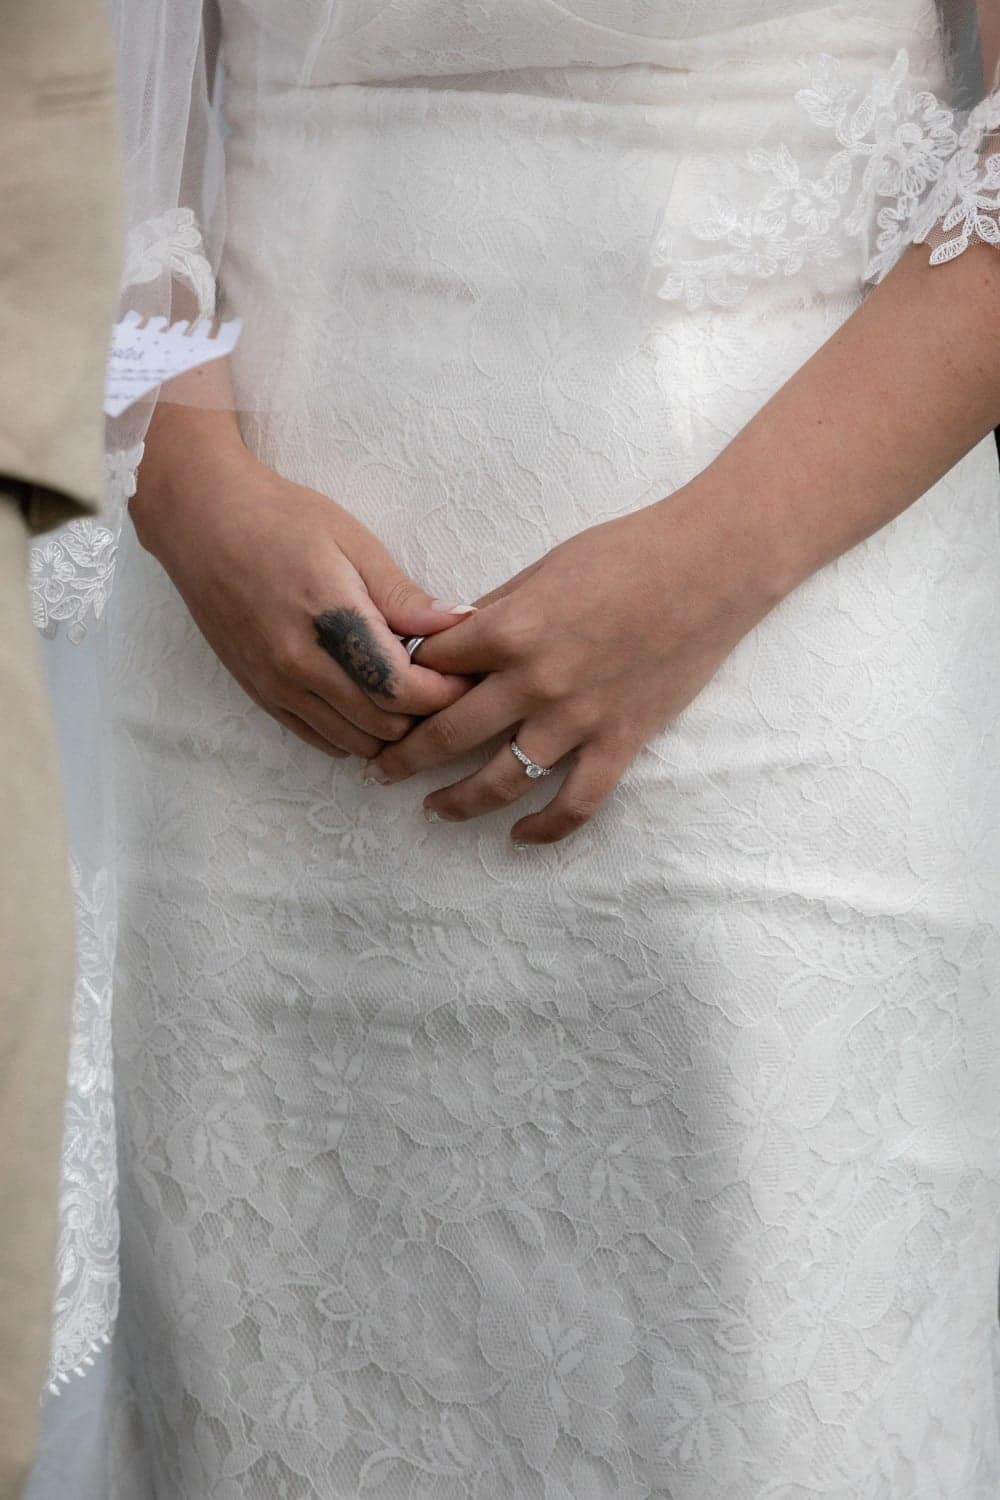 Bride holding grooms wedding ring in hand during wedding ceremony.